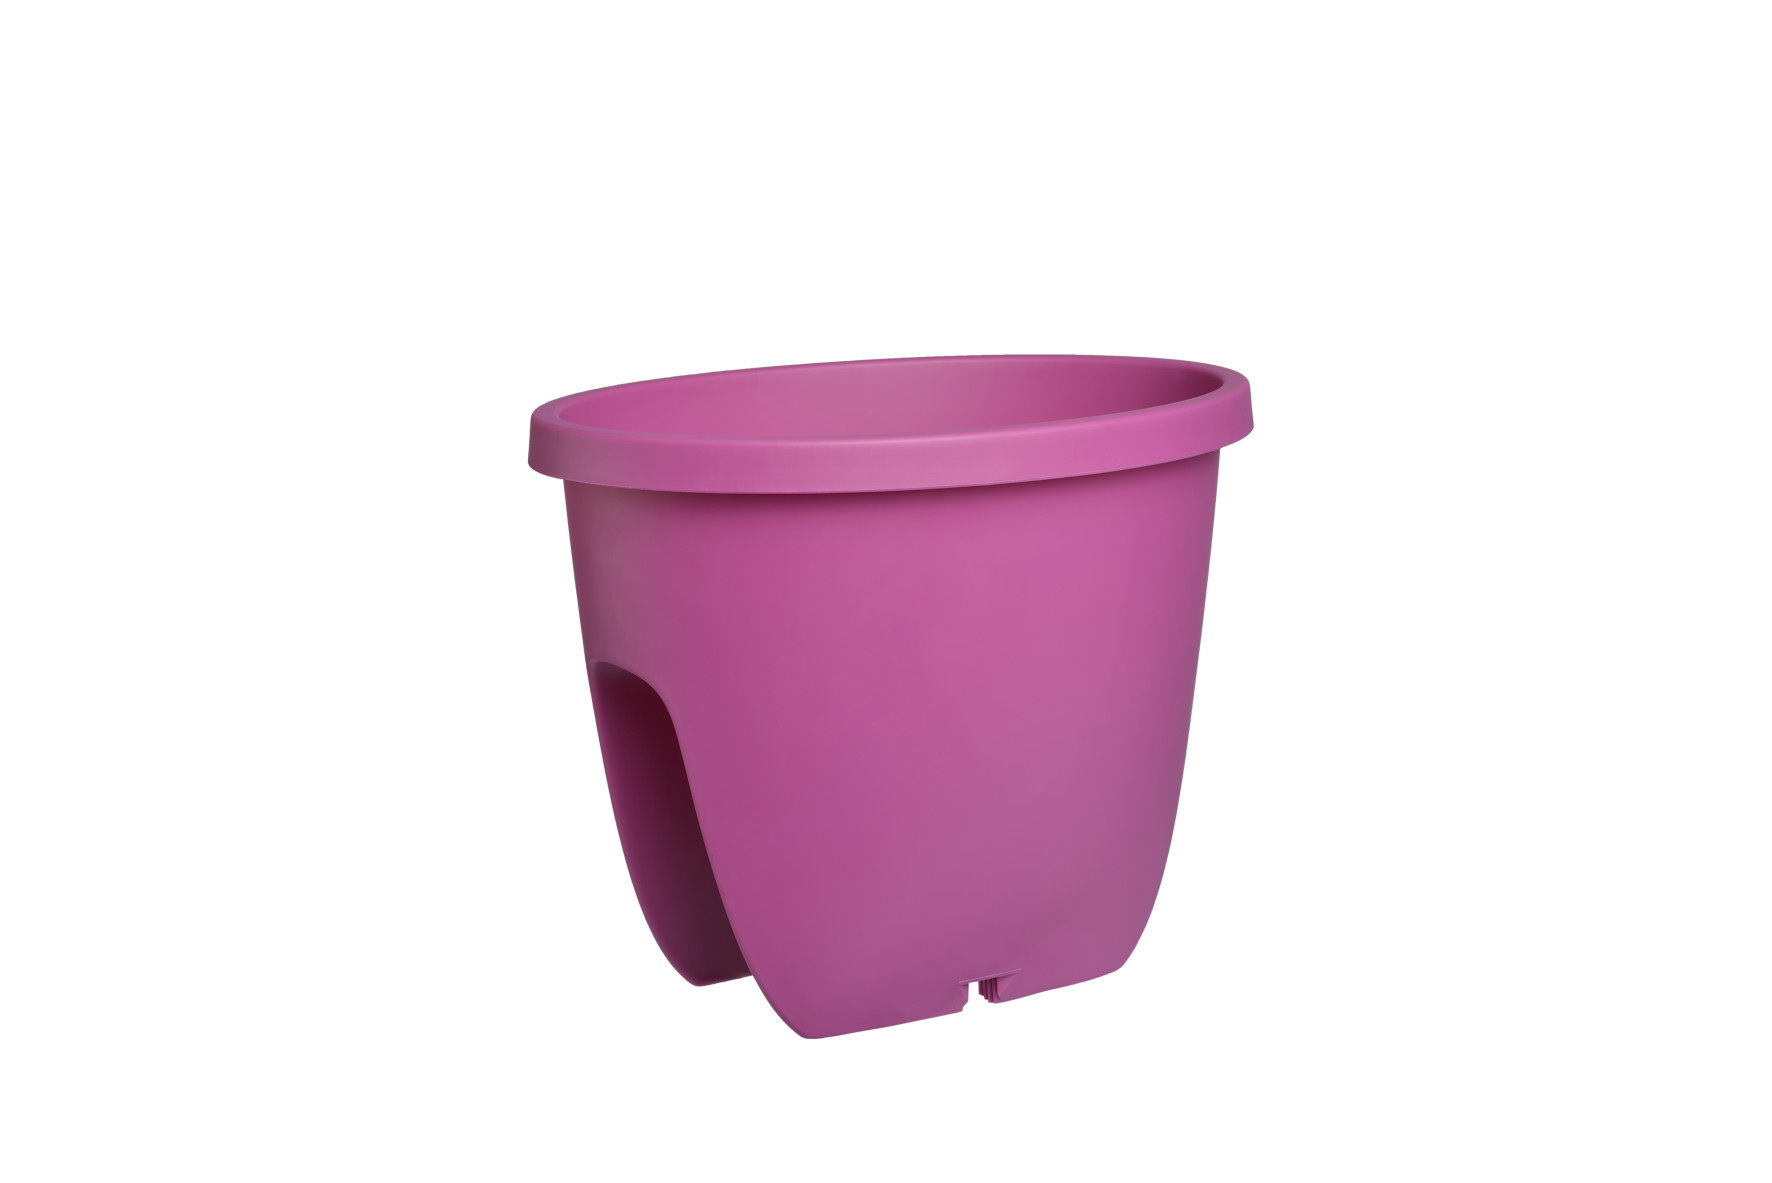 pot de fleurs pour balcon balconia ovi poser sur le garde corps 30 cm fuchsia plastkon. Black Bedroom Furniture Sets. Home Design Ideas